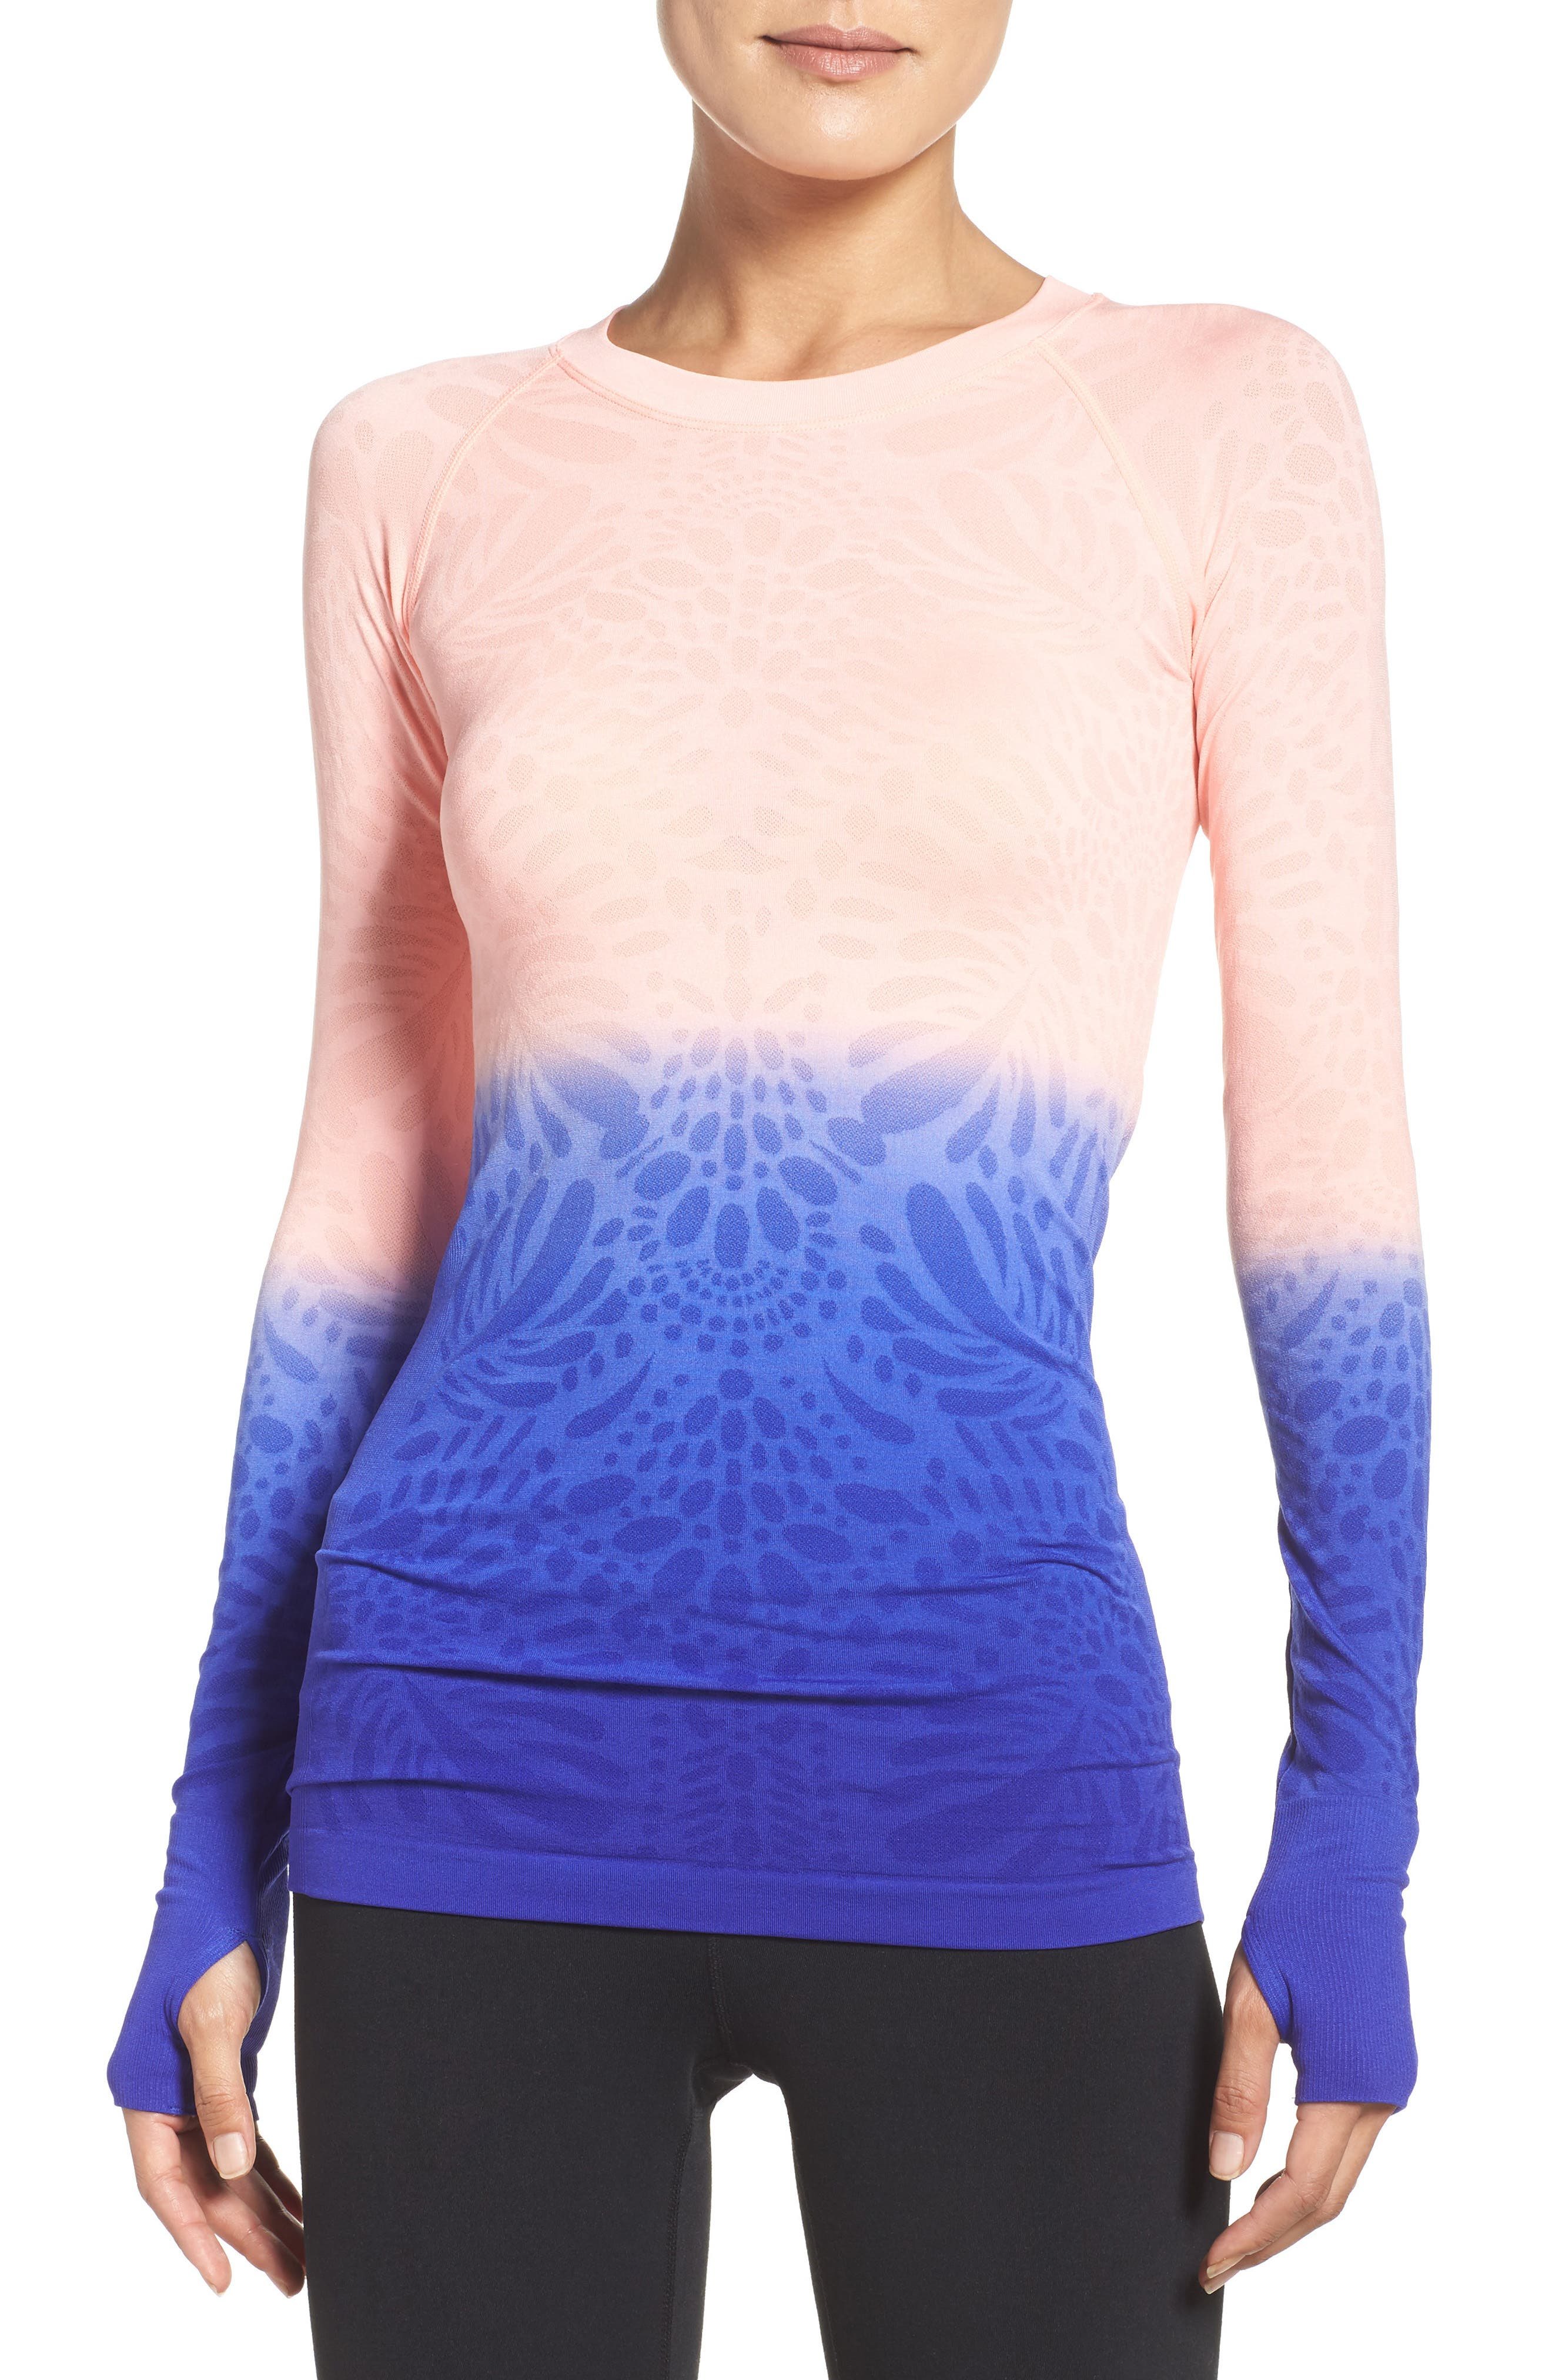 Climawear See the Light Runner Tee